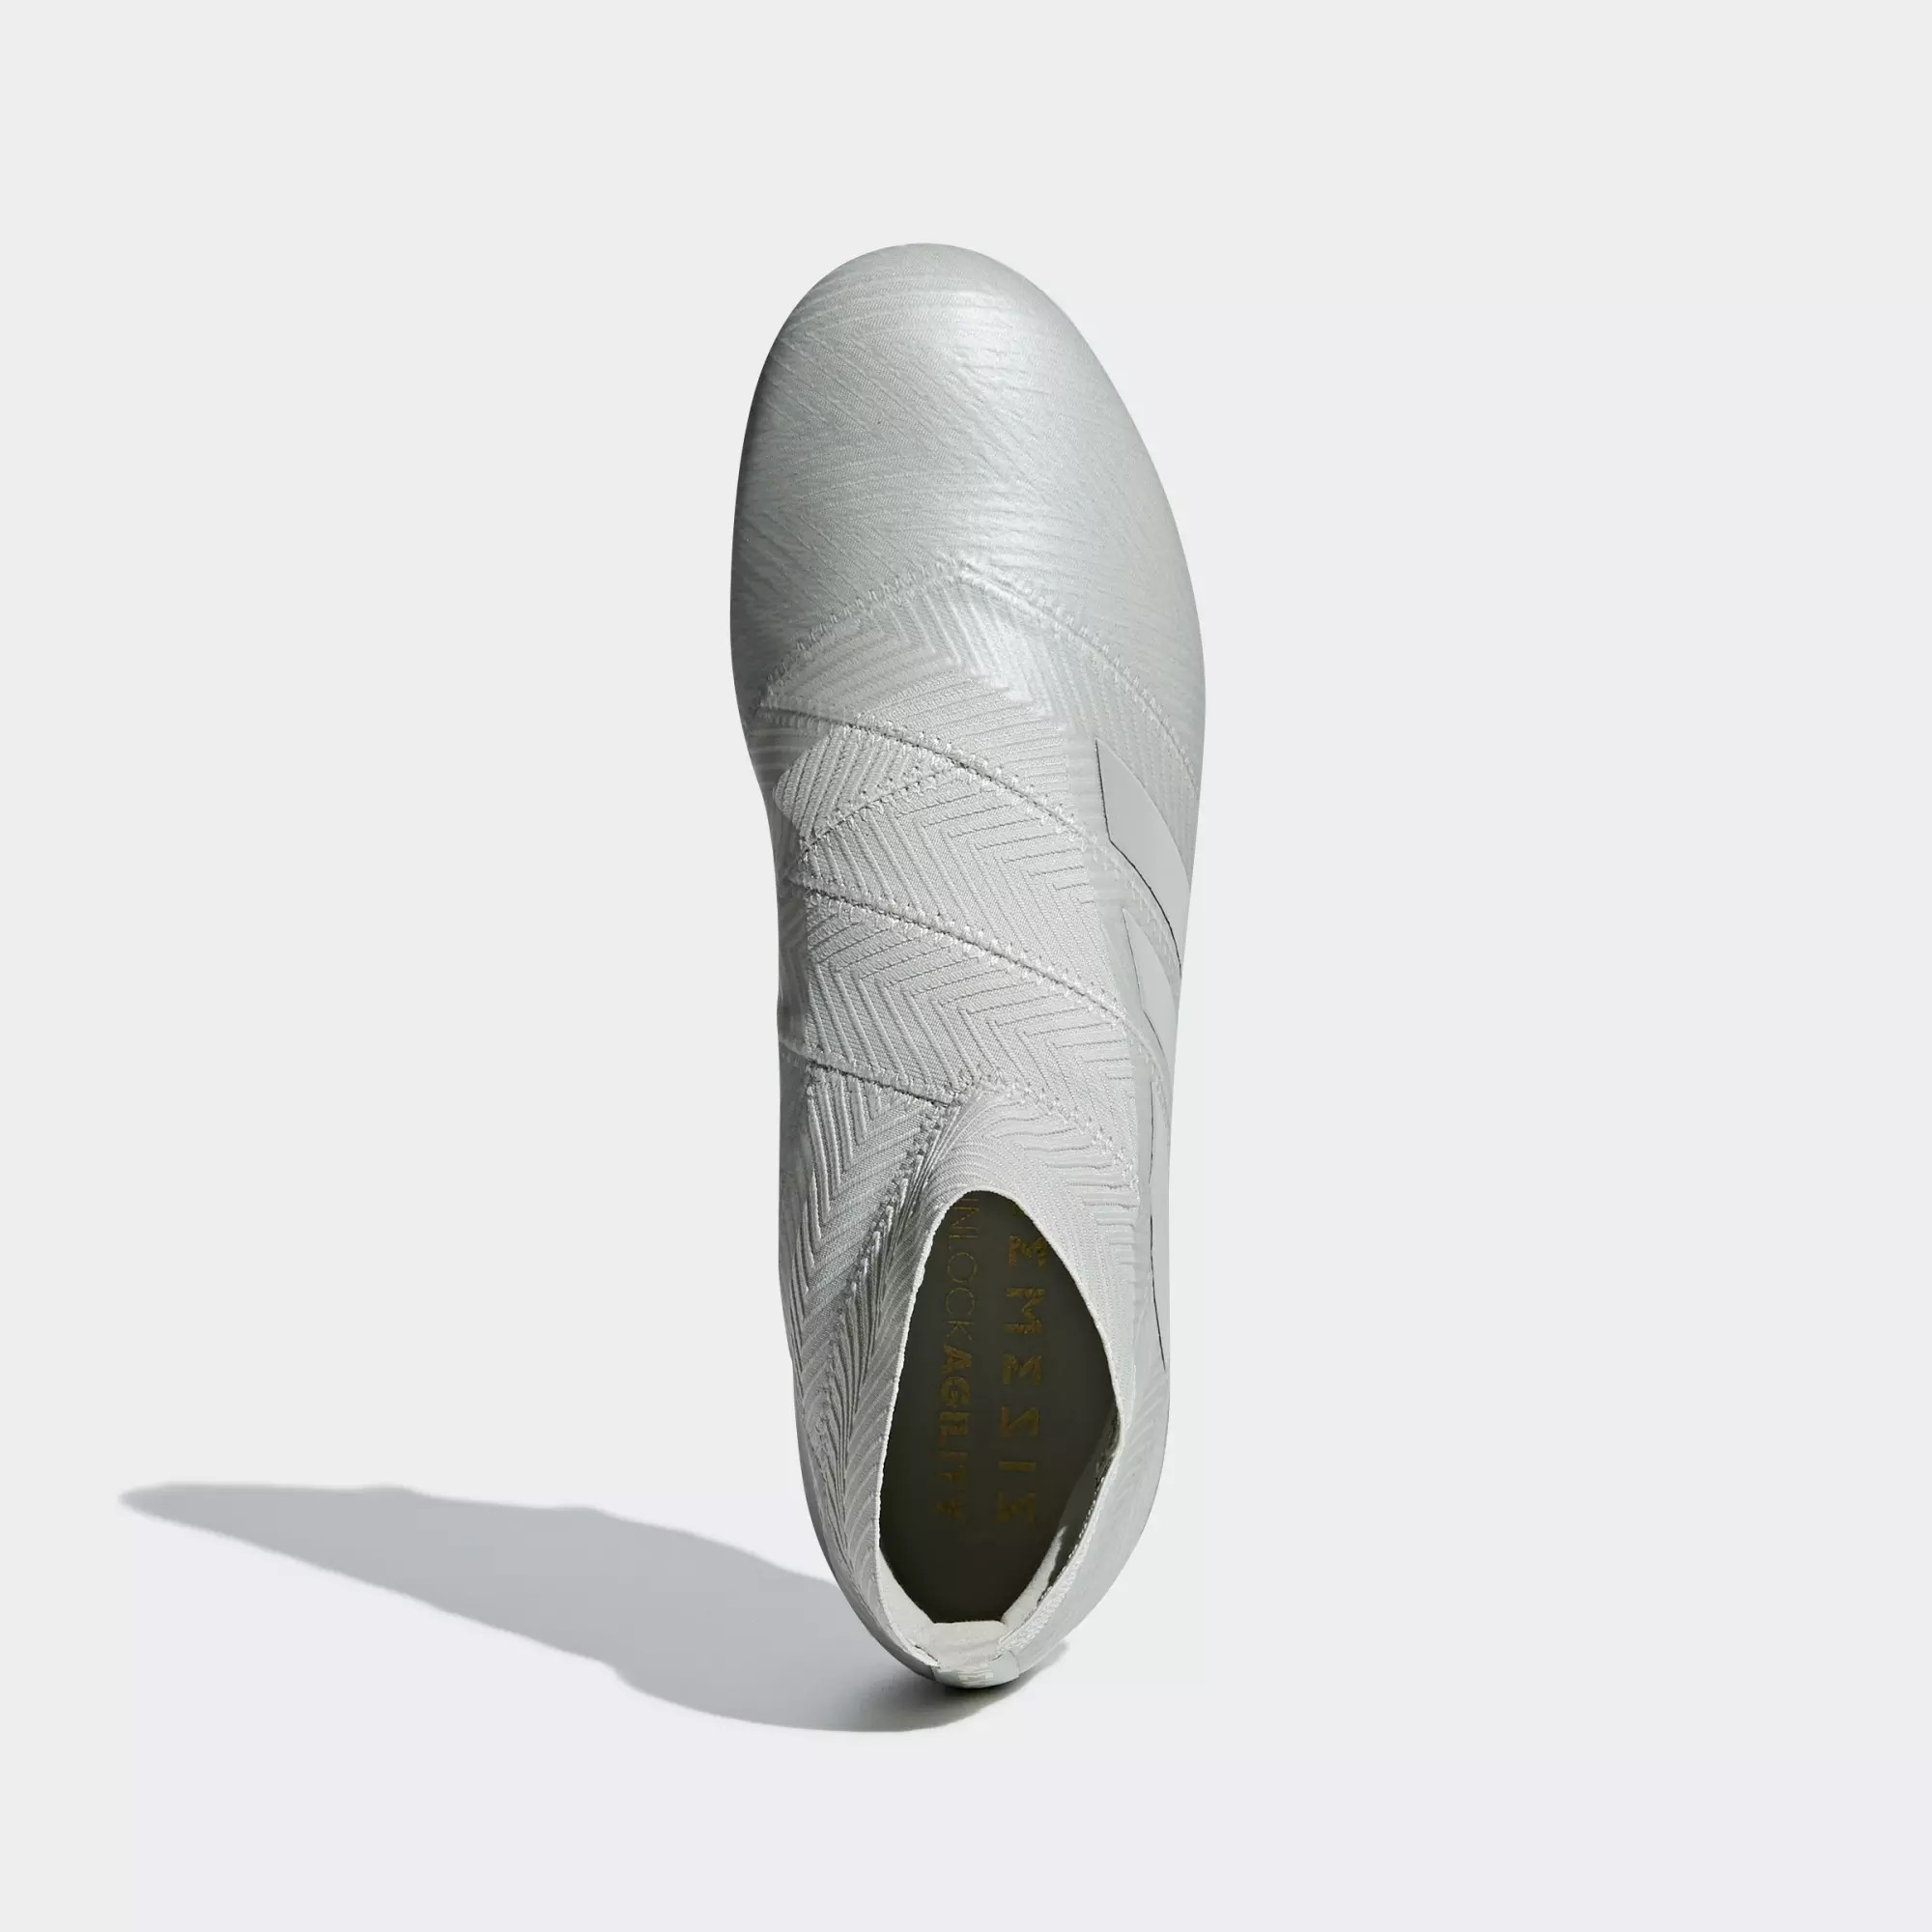 8123e7daf1a9 ... Click to enlarge image  adidas nemeziz 18 firm ground boots spectral mode ash silver ash silver white tint c.jpg  ...